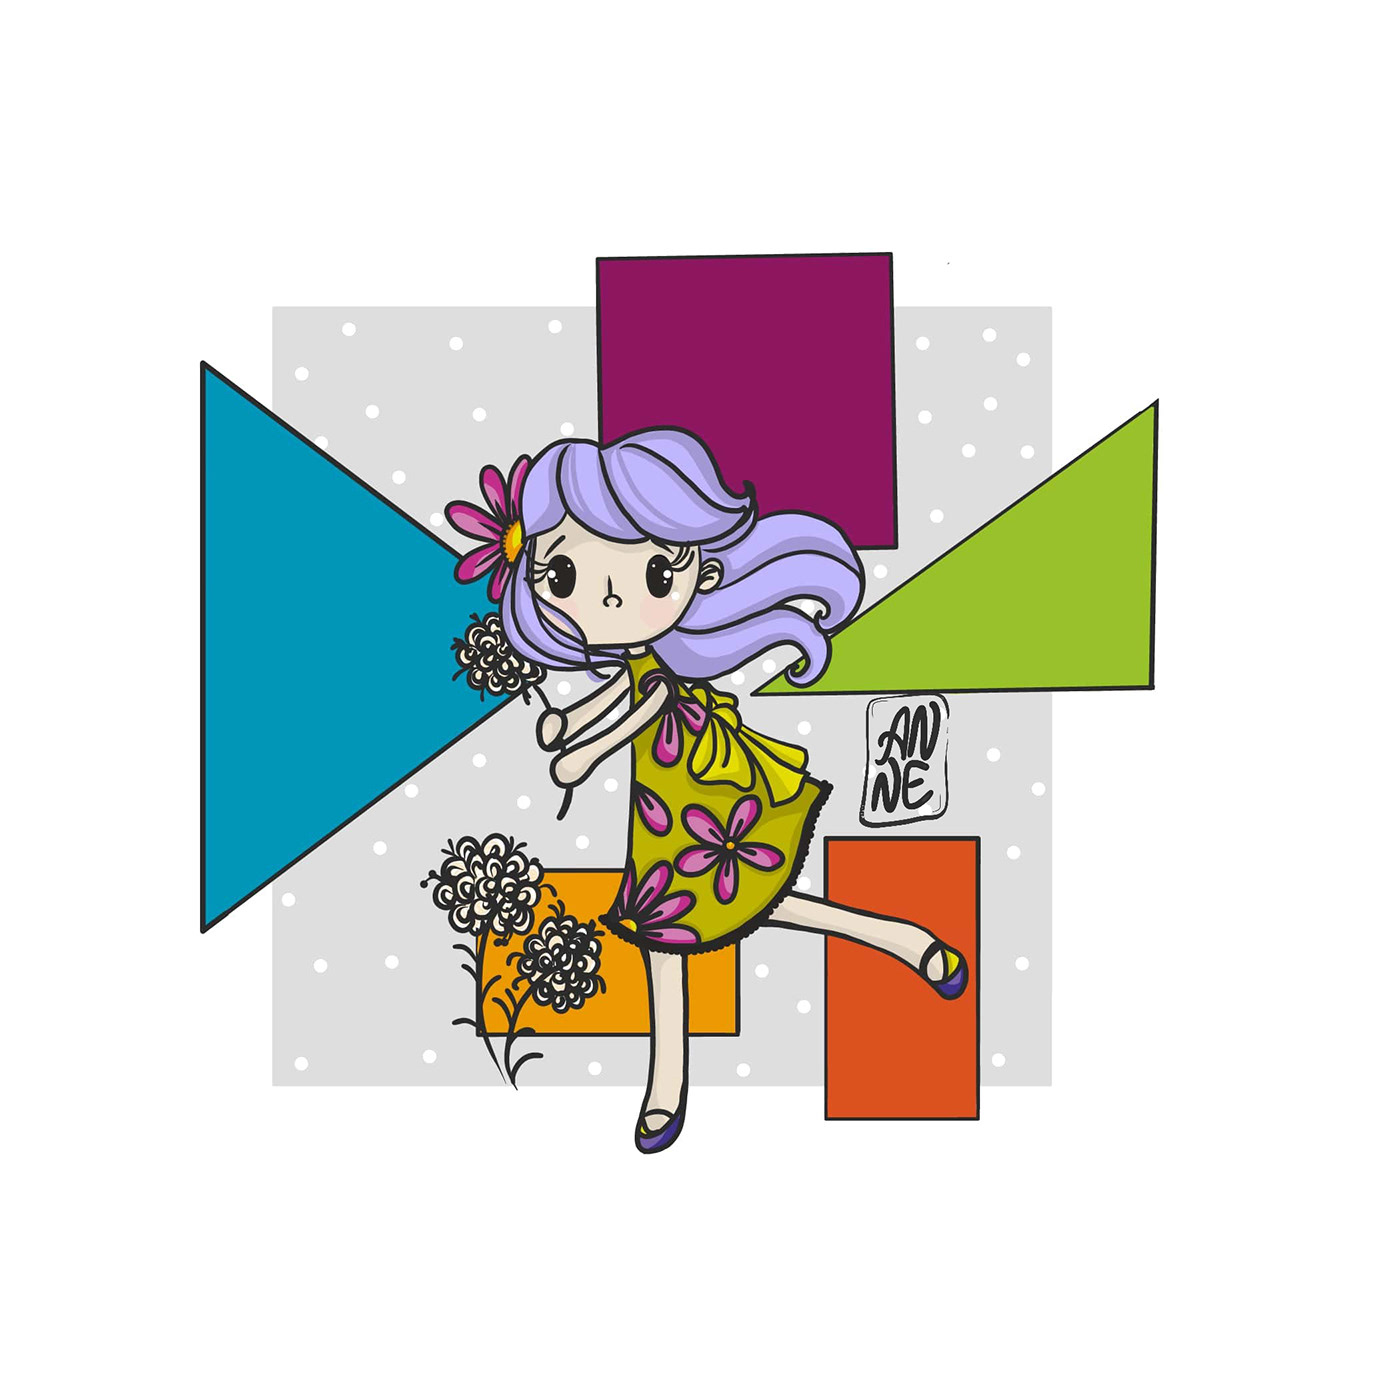 g Girl with flower on a background of geometric shapes.